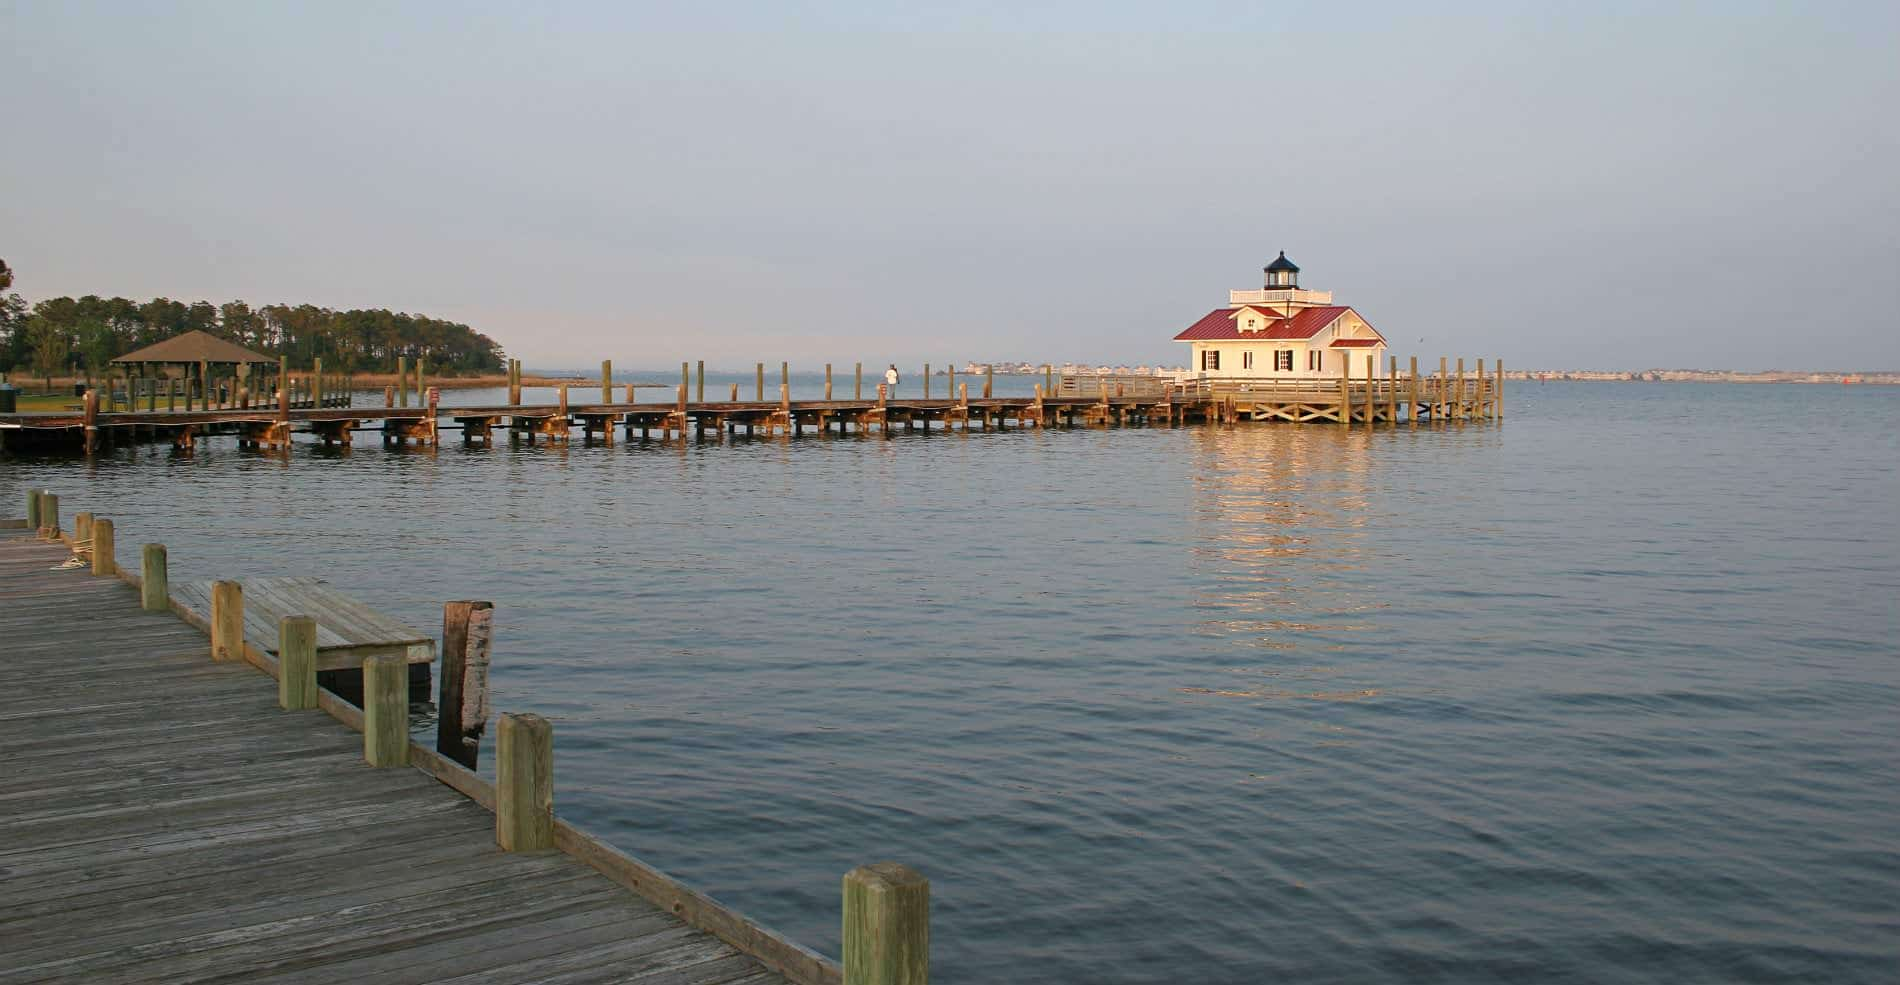 A beautiful view of a small white building with a red roof at the end of the pier, overlooking the water